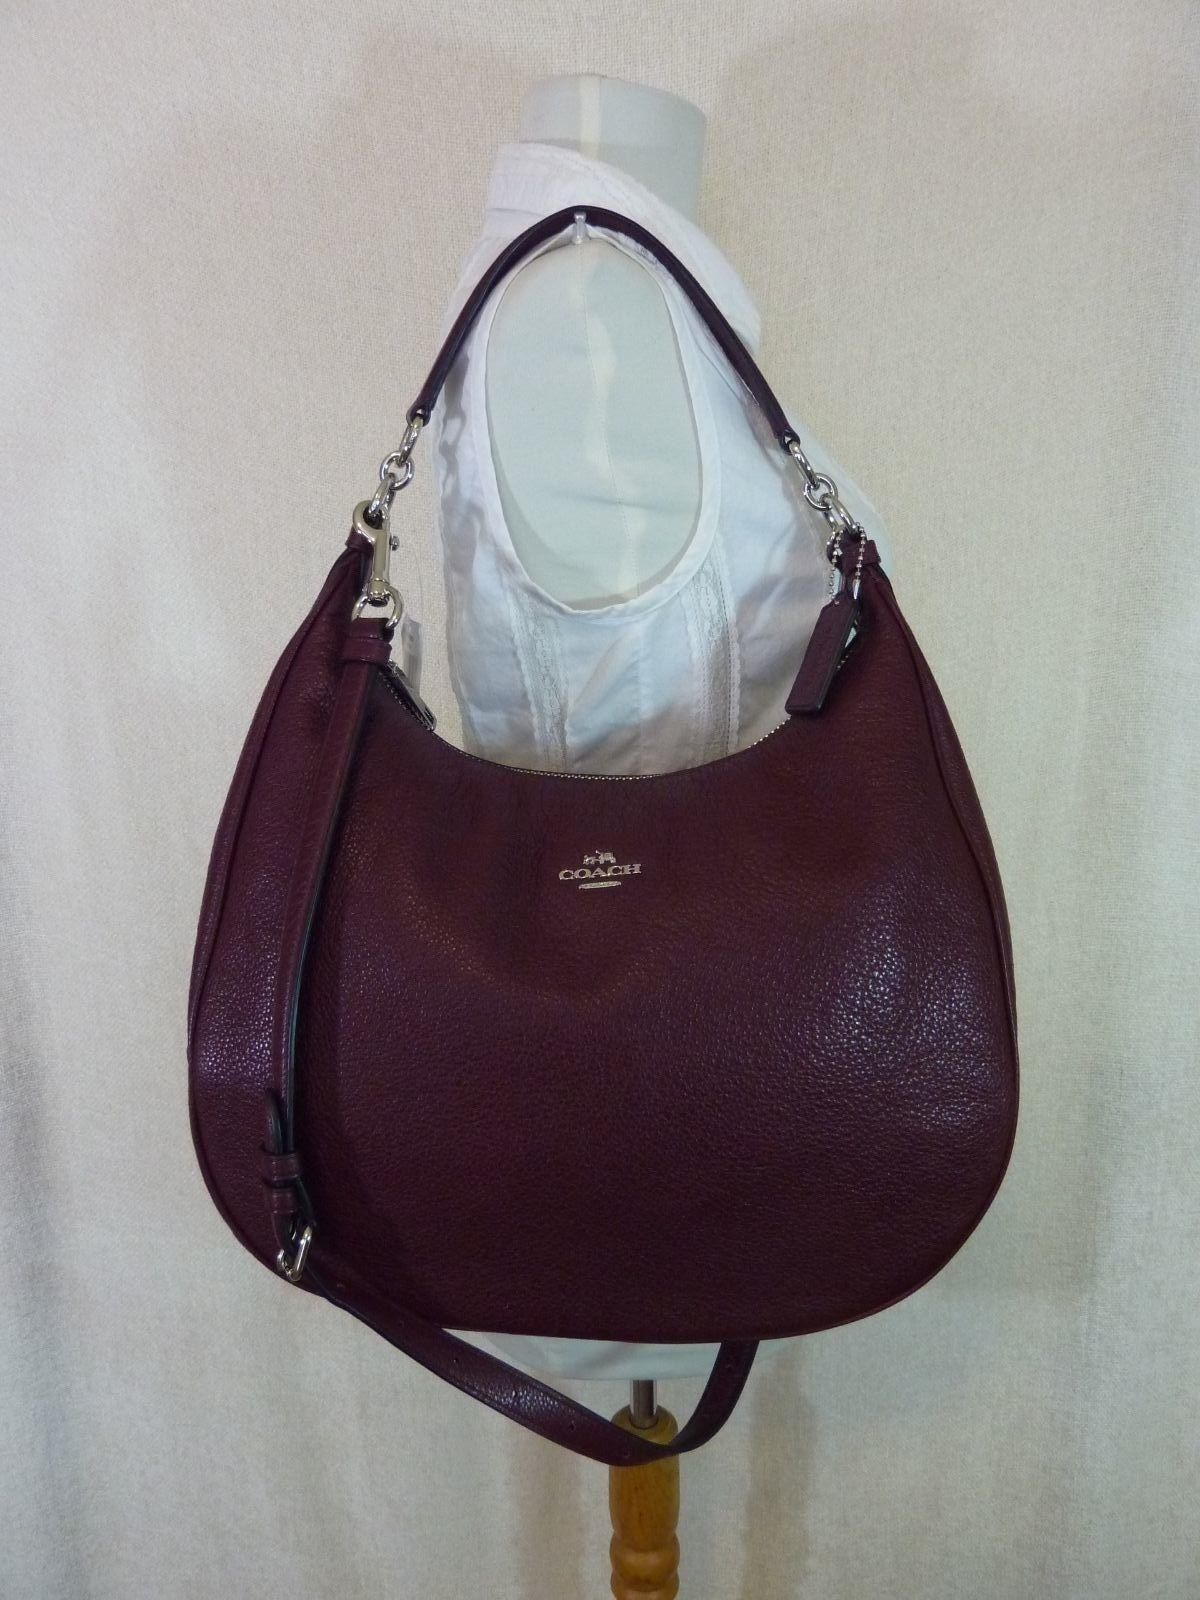 5847db8b6d20 Coach Leather Large Harley Hobo Bag. Hobo bags are hot this season! The  Coach…